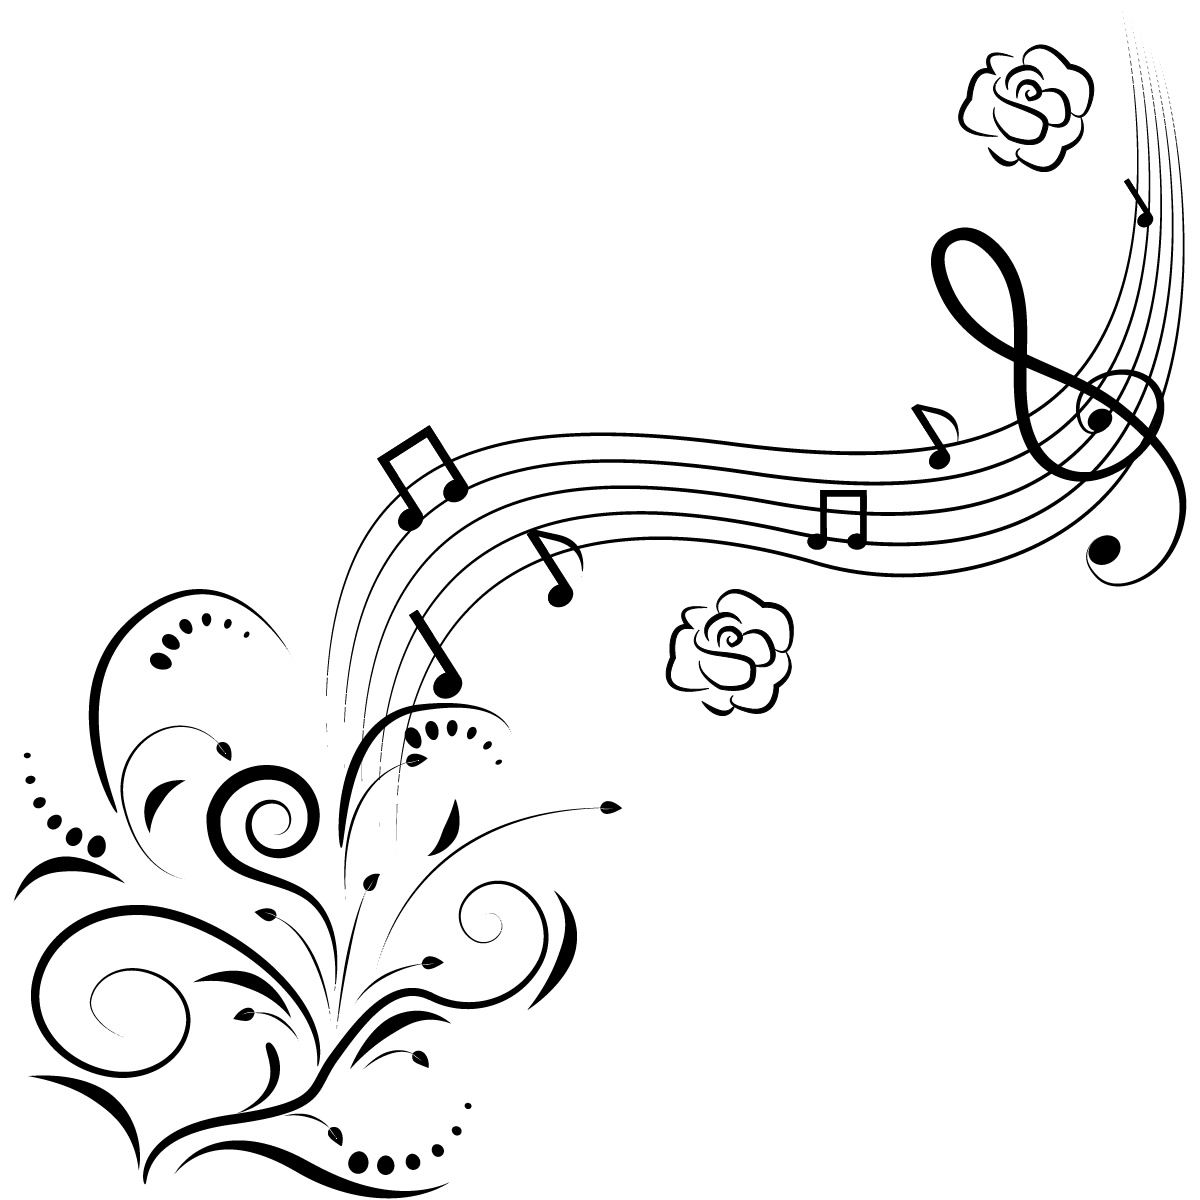 hight resolution of music note border free music border image 5 musical note borders clipart clipartpost